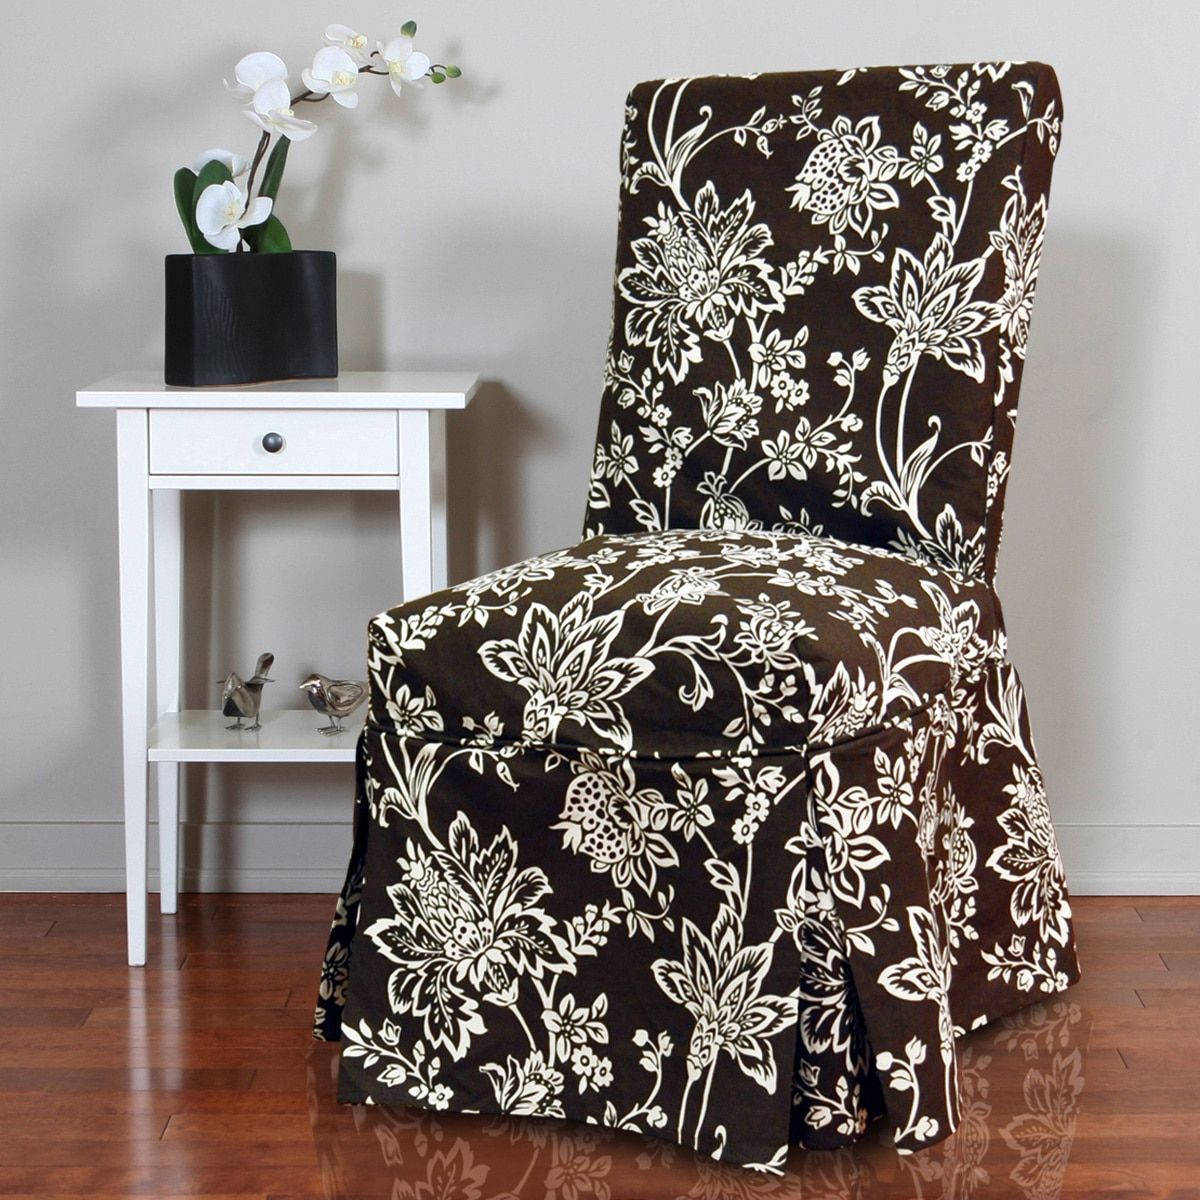 Green Chair Covers Quickcover Verona 1 Piece Floral Relaxed Fit Full Pleat